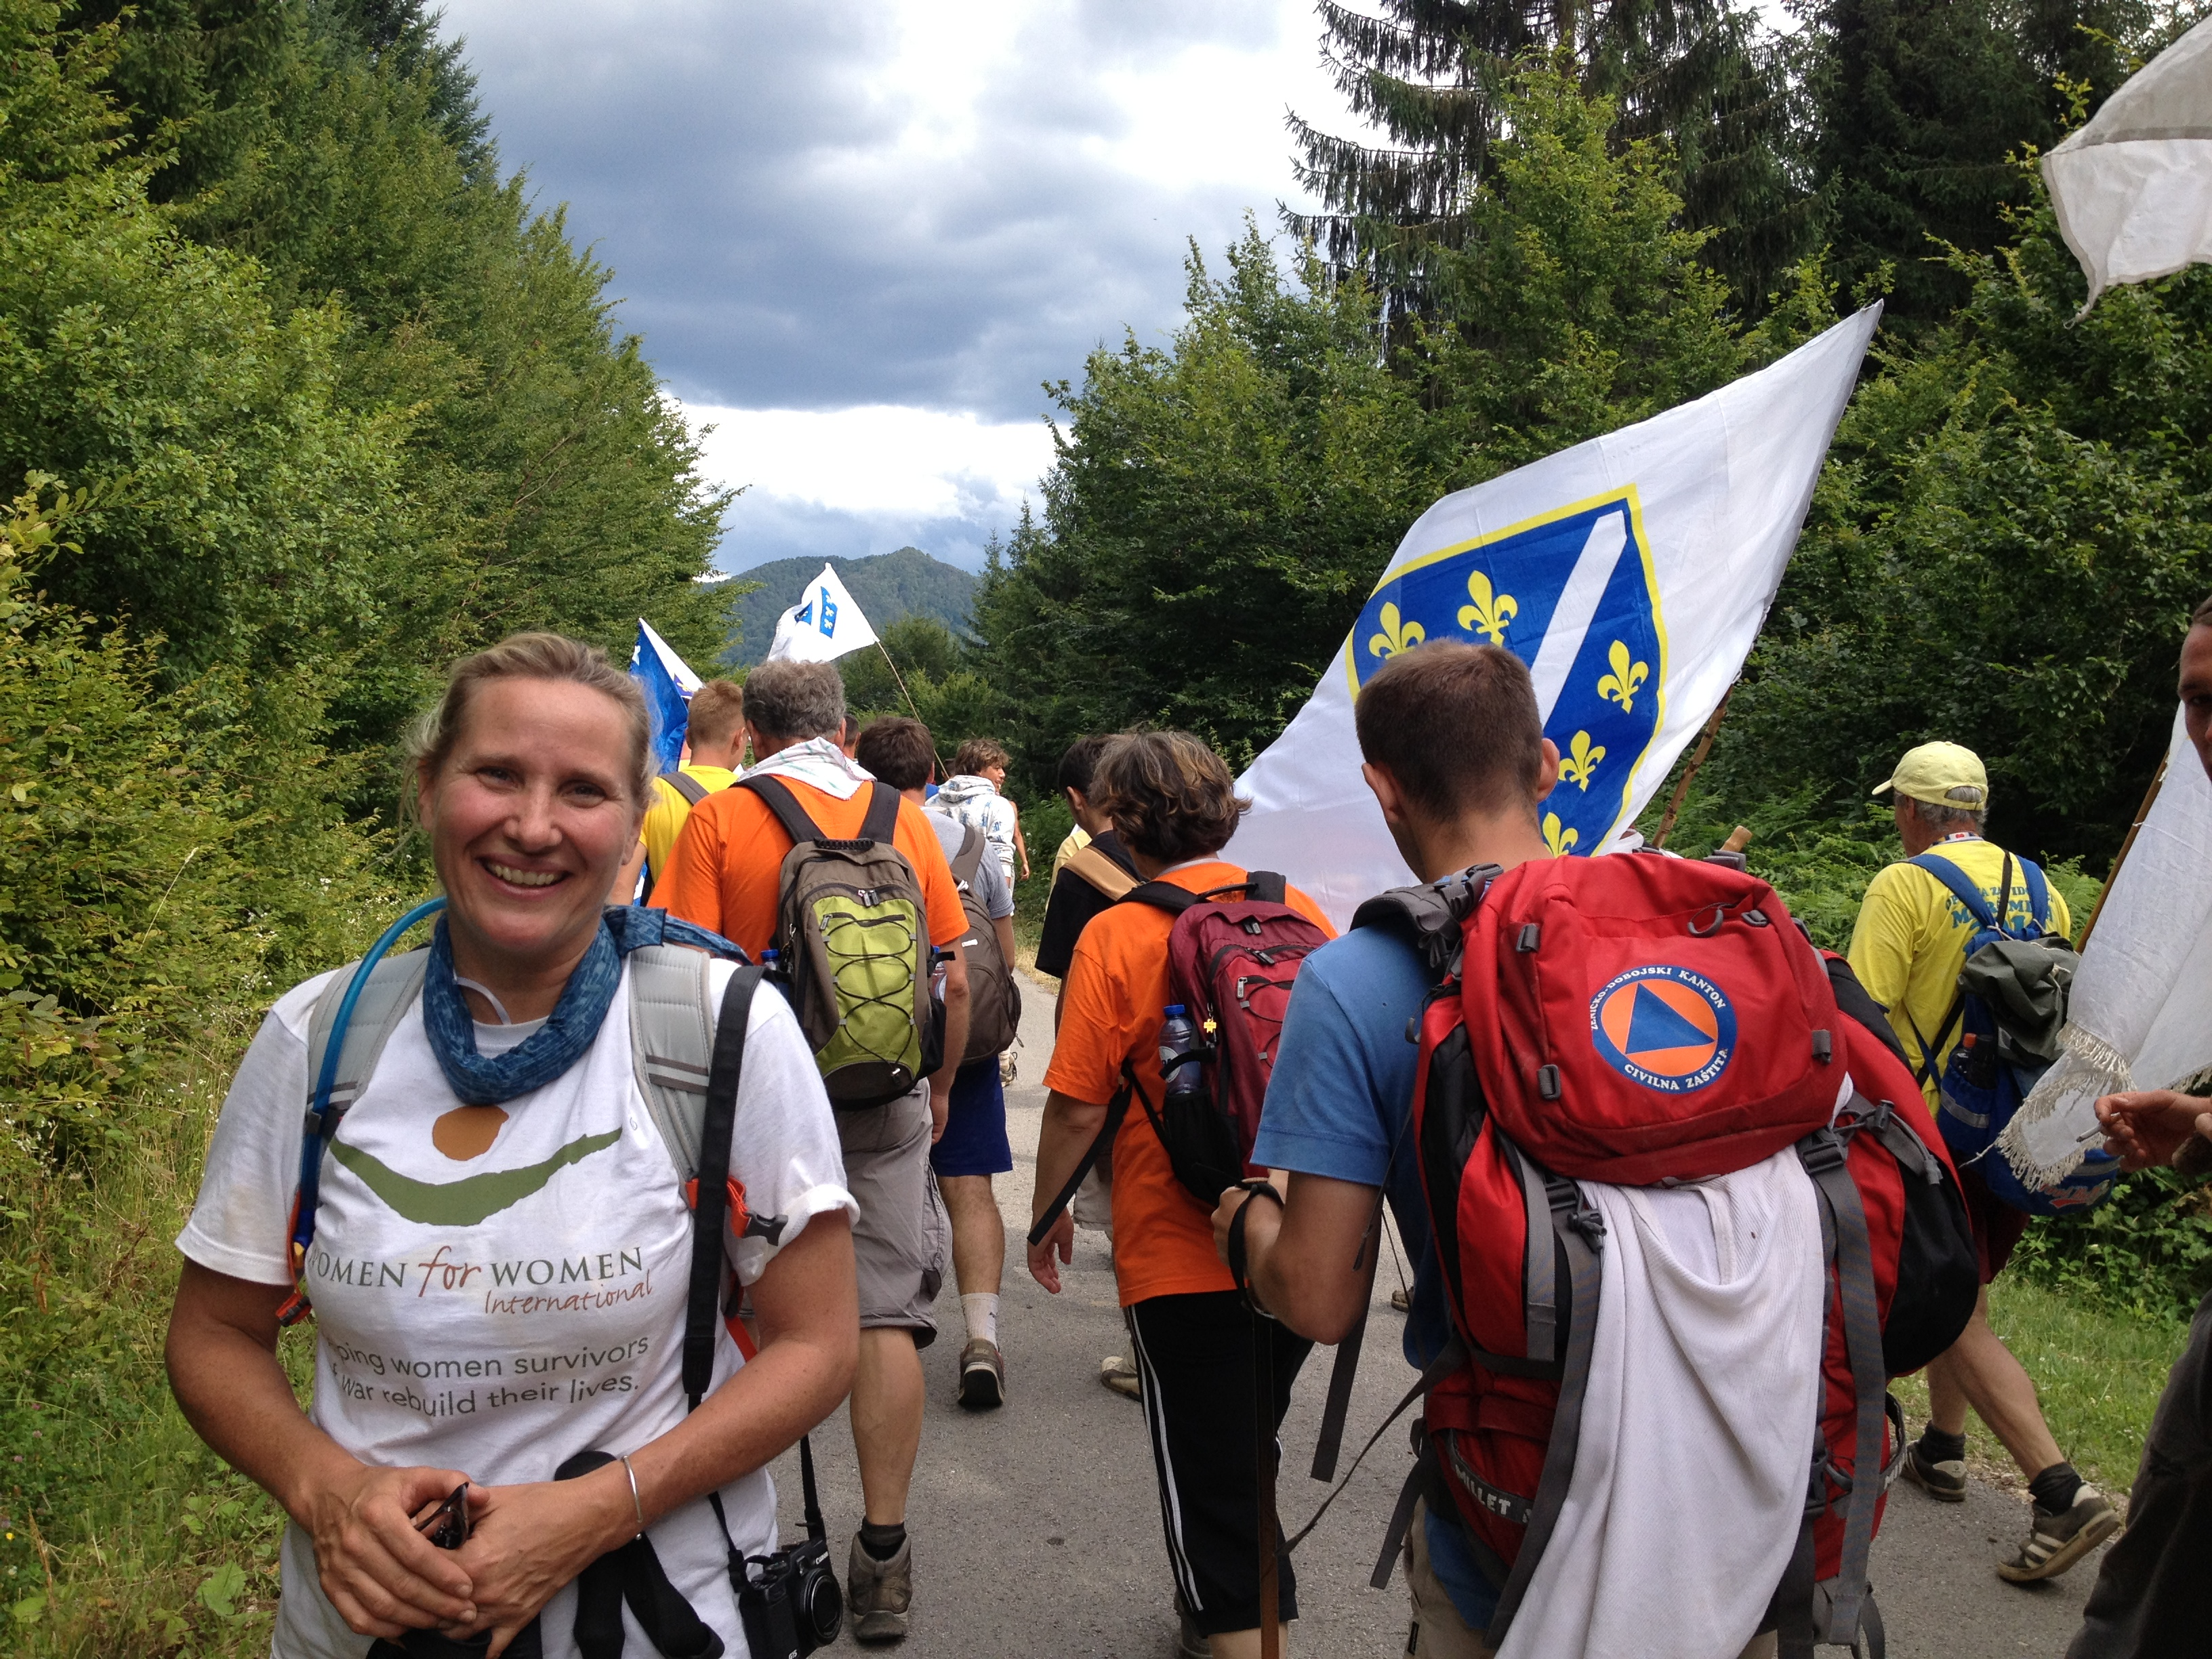 Tracy Craighead marked 75 miles to support women survivors of the war in Bosnia